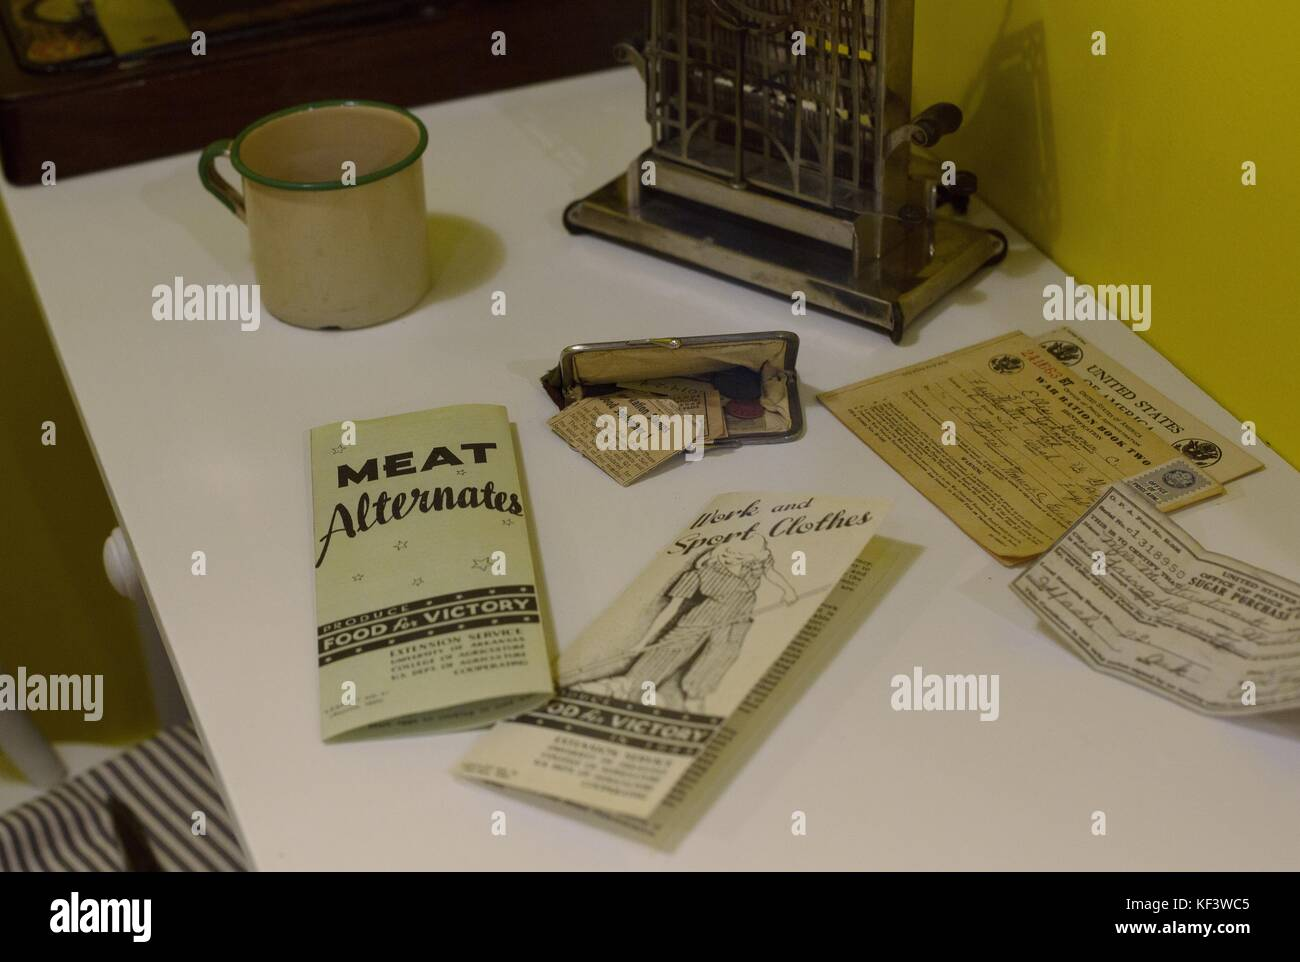 A display of World War 2 brochures and ration books at the Shiloh Museum of Ozark History in Springdale, Arkansas, - Stock Image